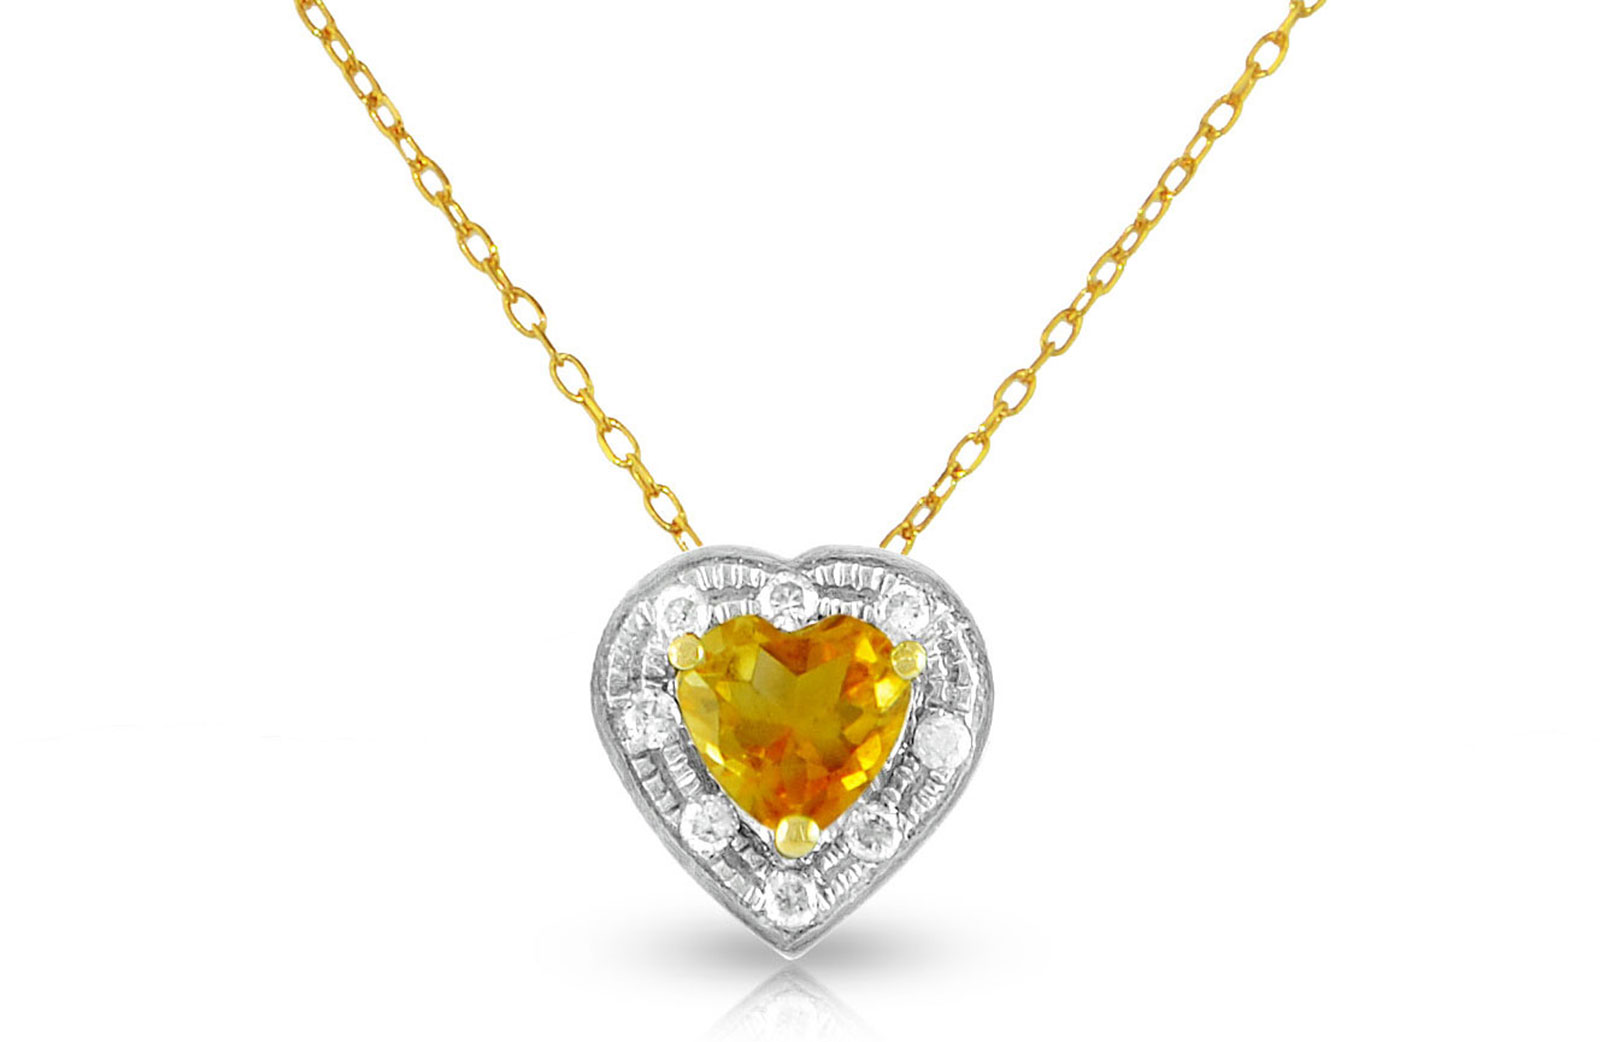 Vera Perla 18K Solid Gold and 0.08Cts Diamonds and 5mm Genuine Citrine Heart Necklace